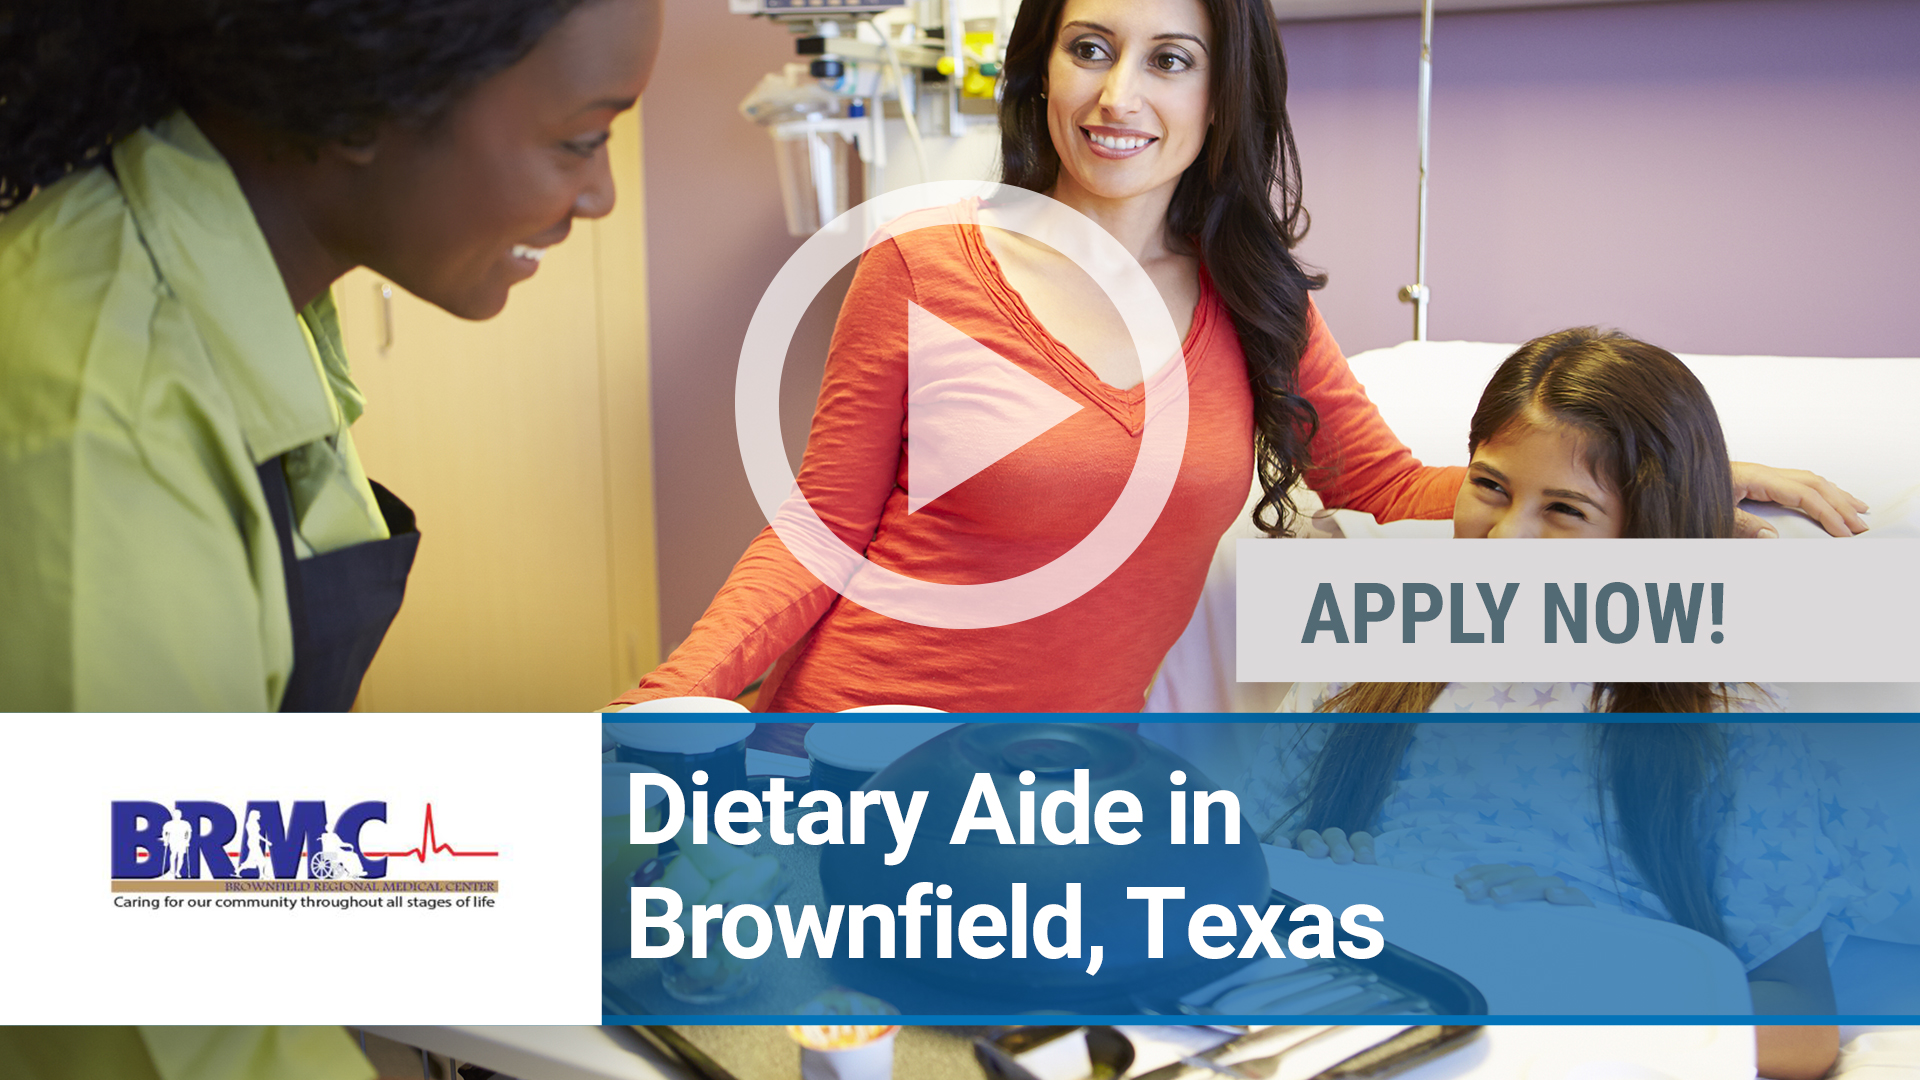 Watch our careers video for available job opening Dietary Aide in Brownfield, Texas in Amarillo, TX